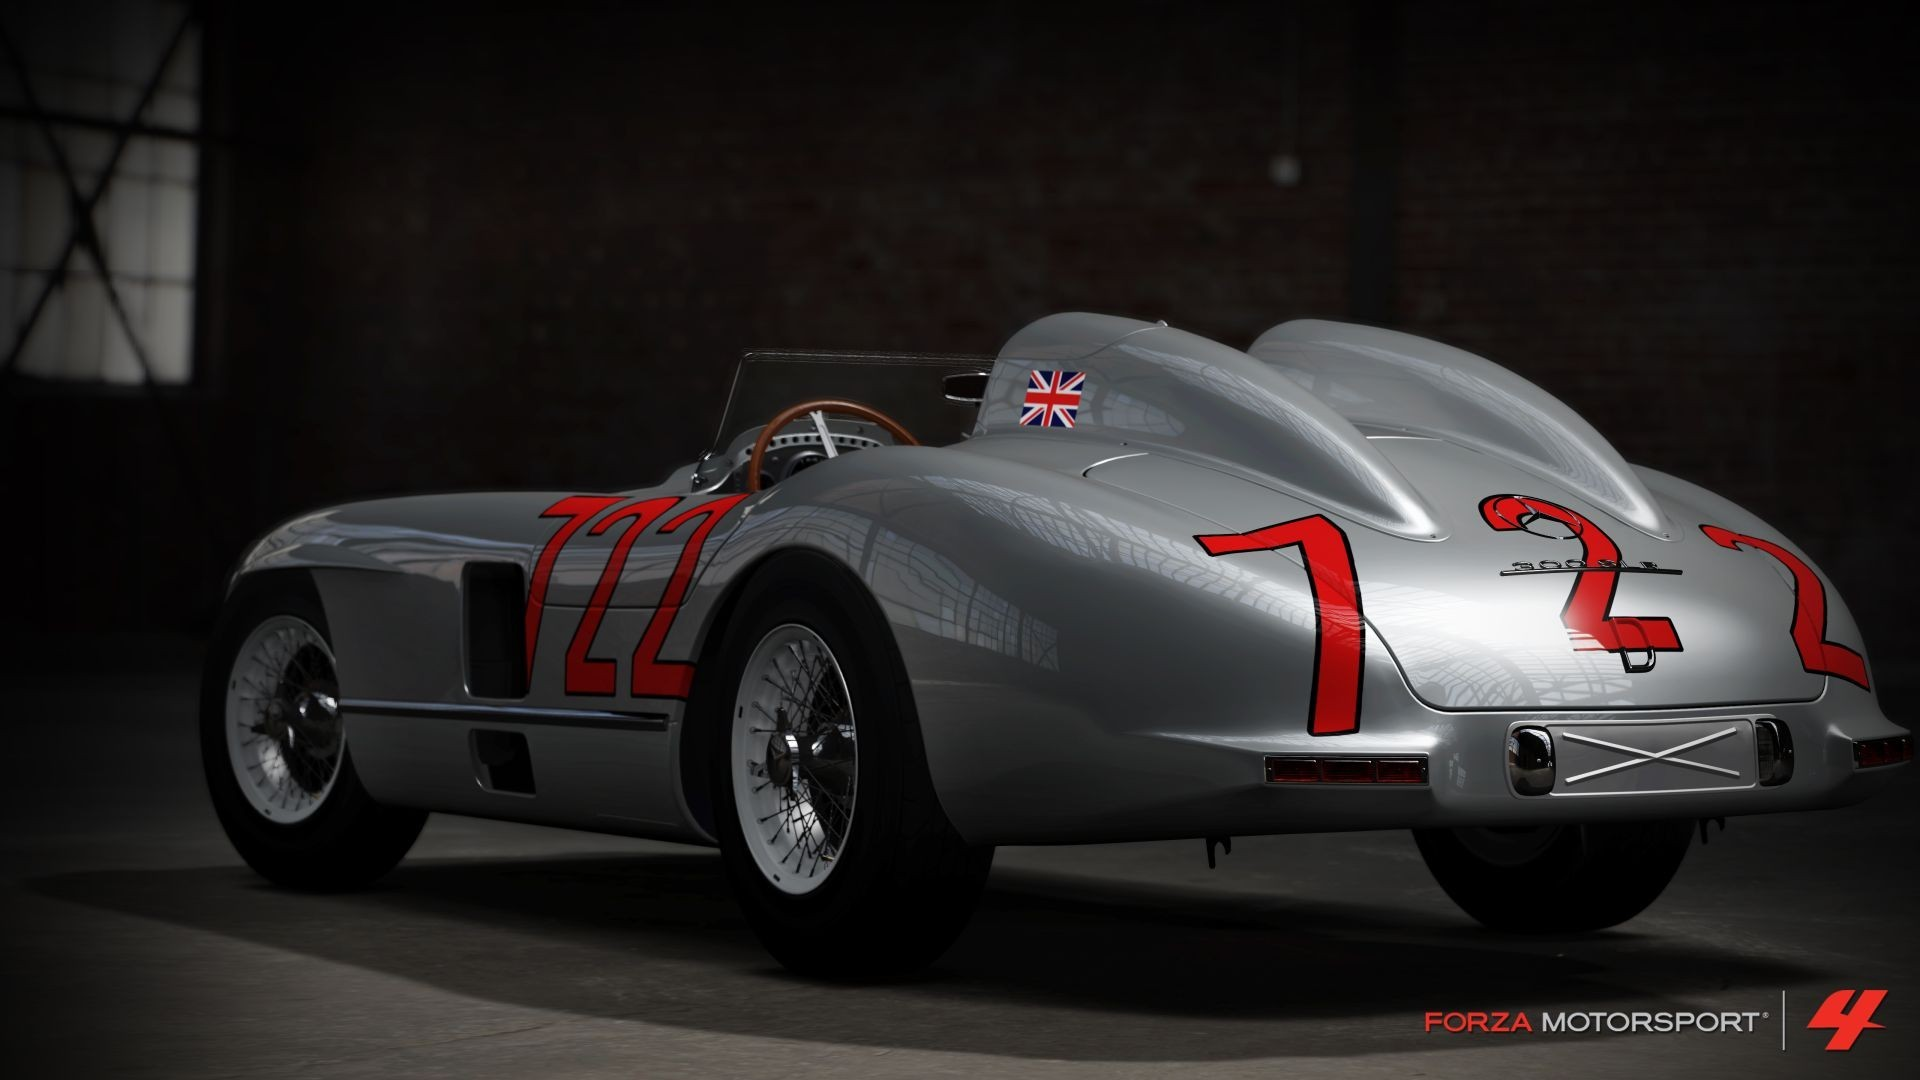 1955 mercedes benz 300slr forza motorsport 4 wallpaper On mercedes benz motorsport